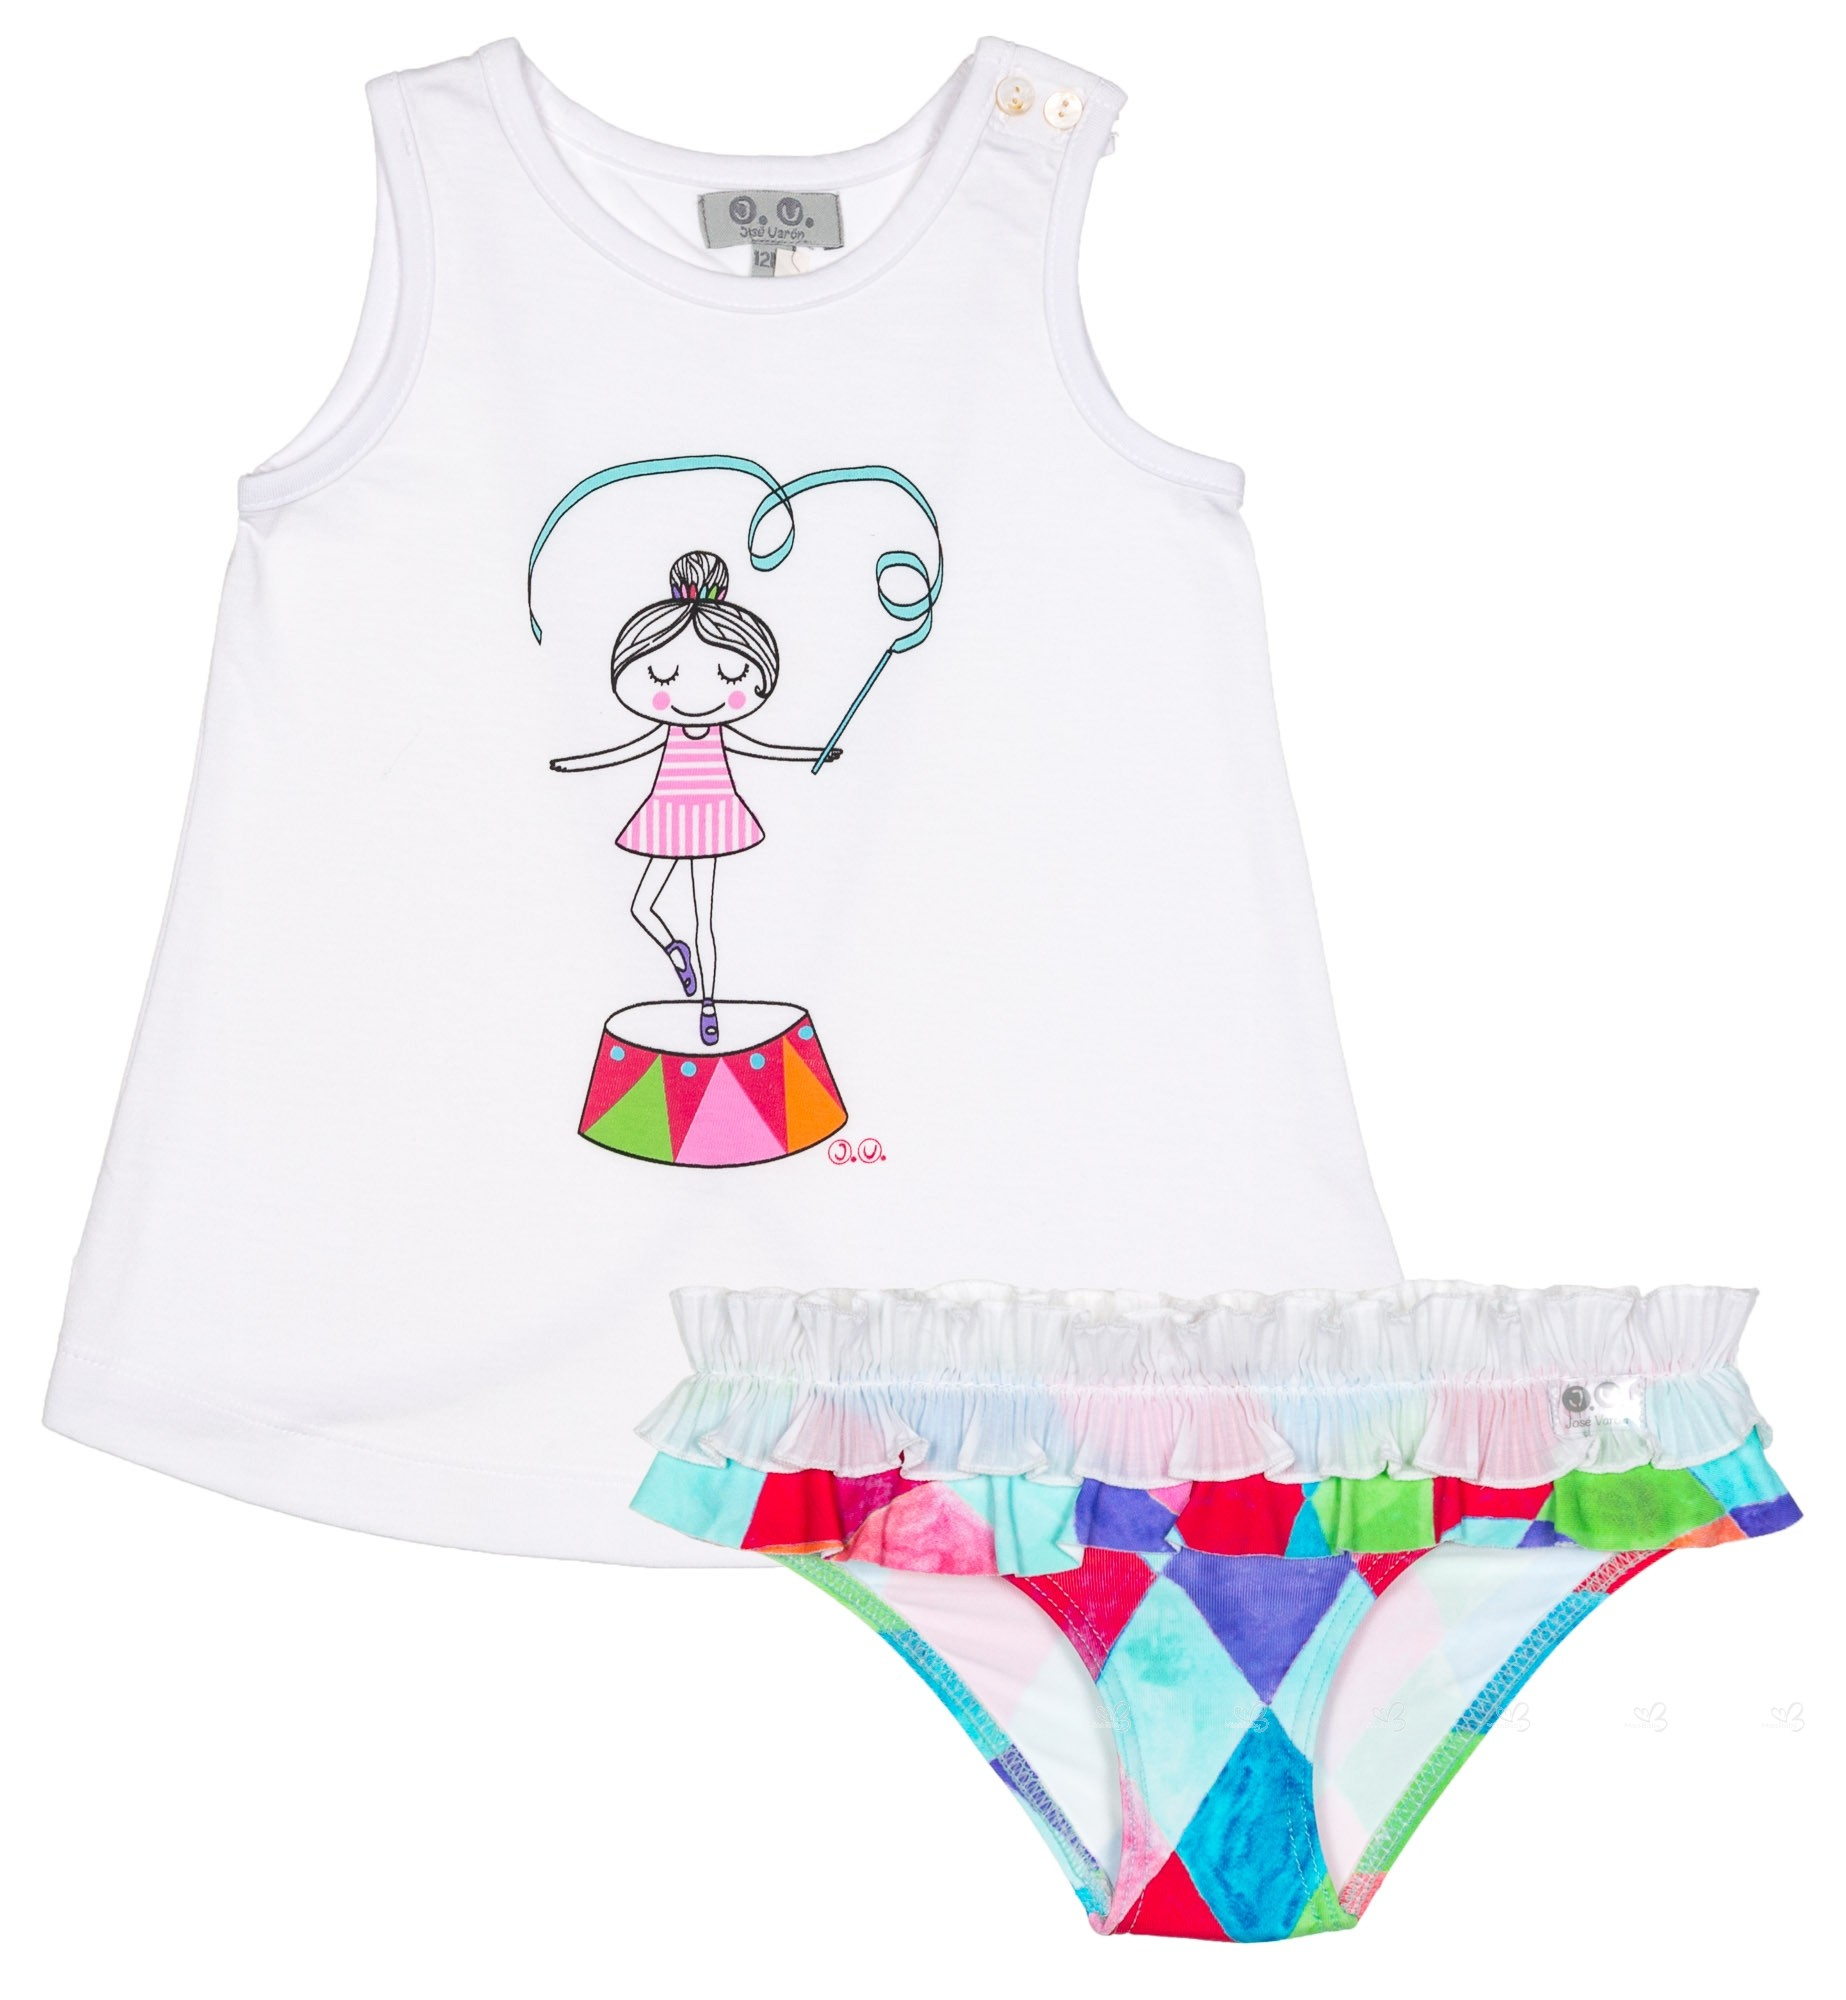 47e3dca026f51 J.V. Girls Circus Dancer Top & Colourful Diamond Bikini Bottoms Set ...